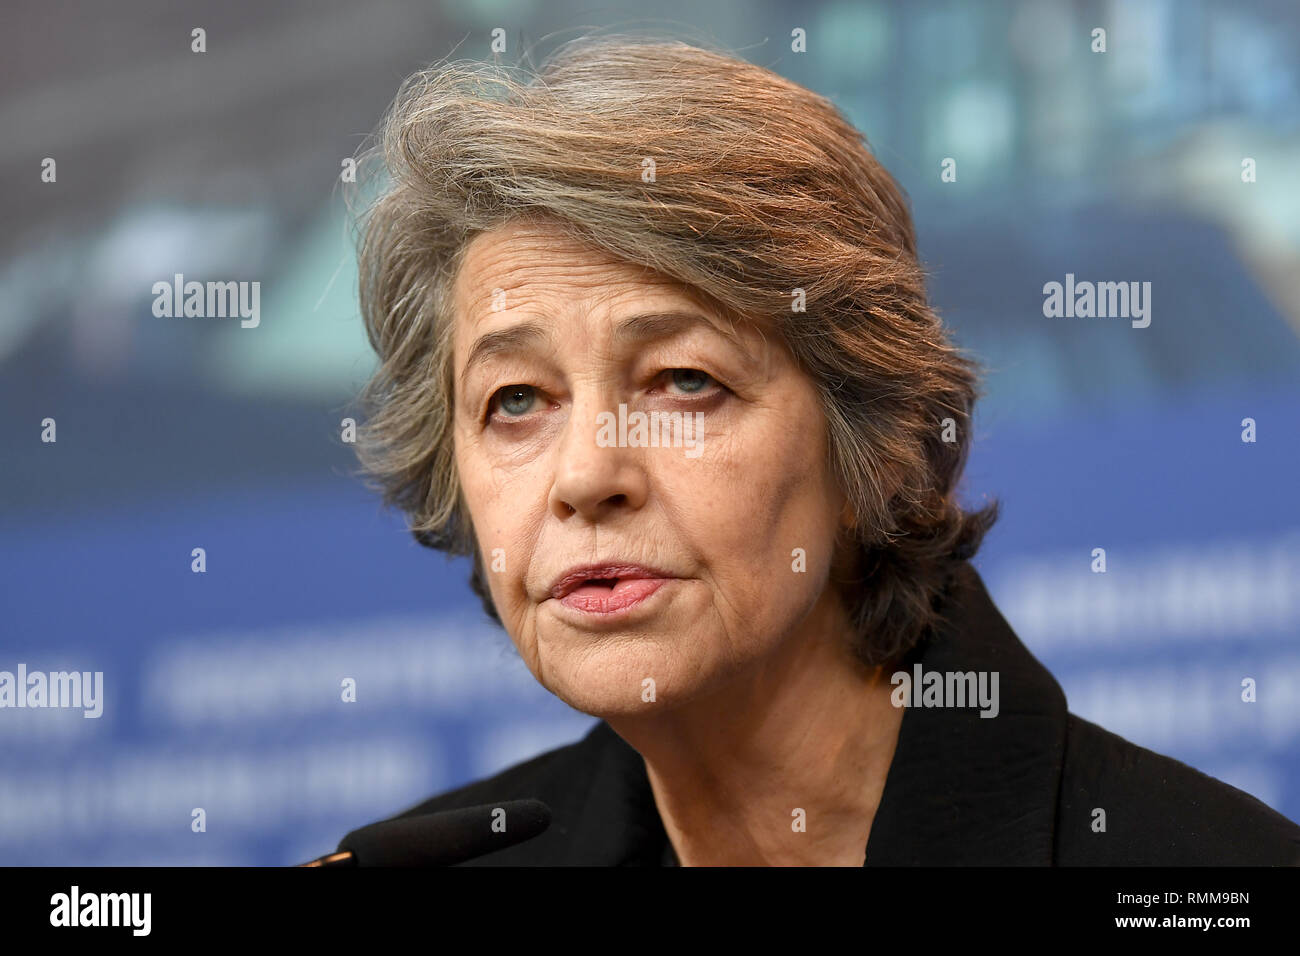 Charlotte Rampling attends the Hommage Charlotte Rampling press conference during the 69th Berlinale International Film Festival. © Paul Treadway - Stock Image